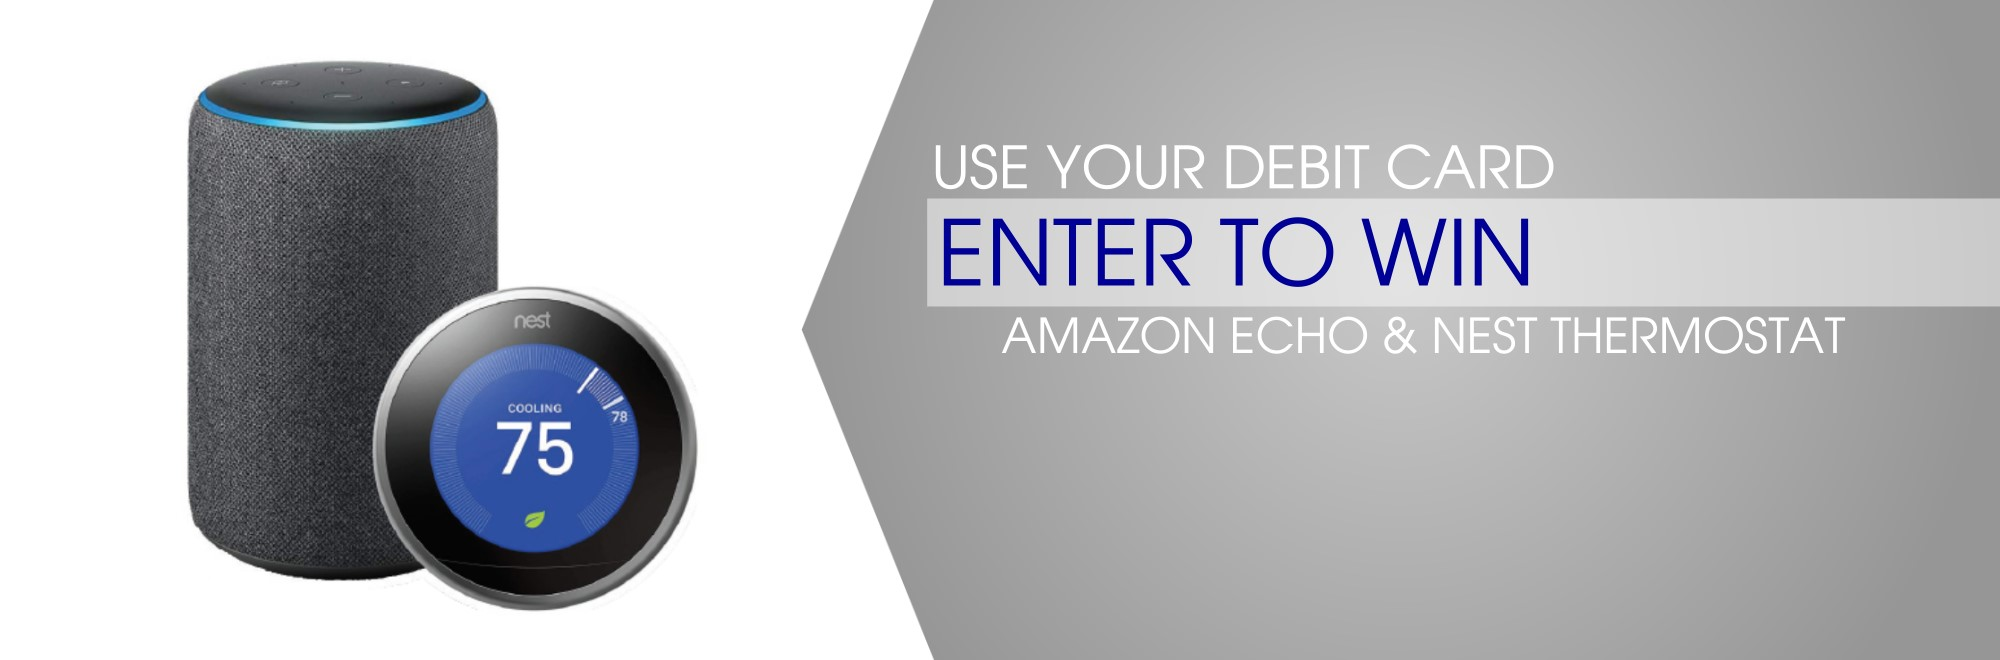 photo of amazon echo and nest thermostat with text- use your debit card to enter to win